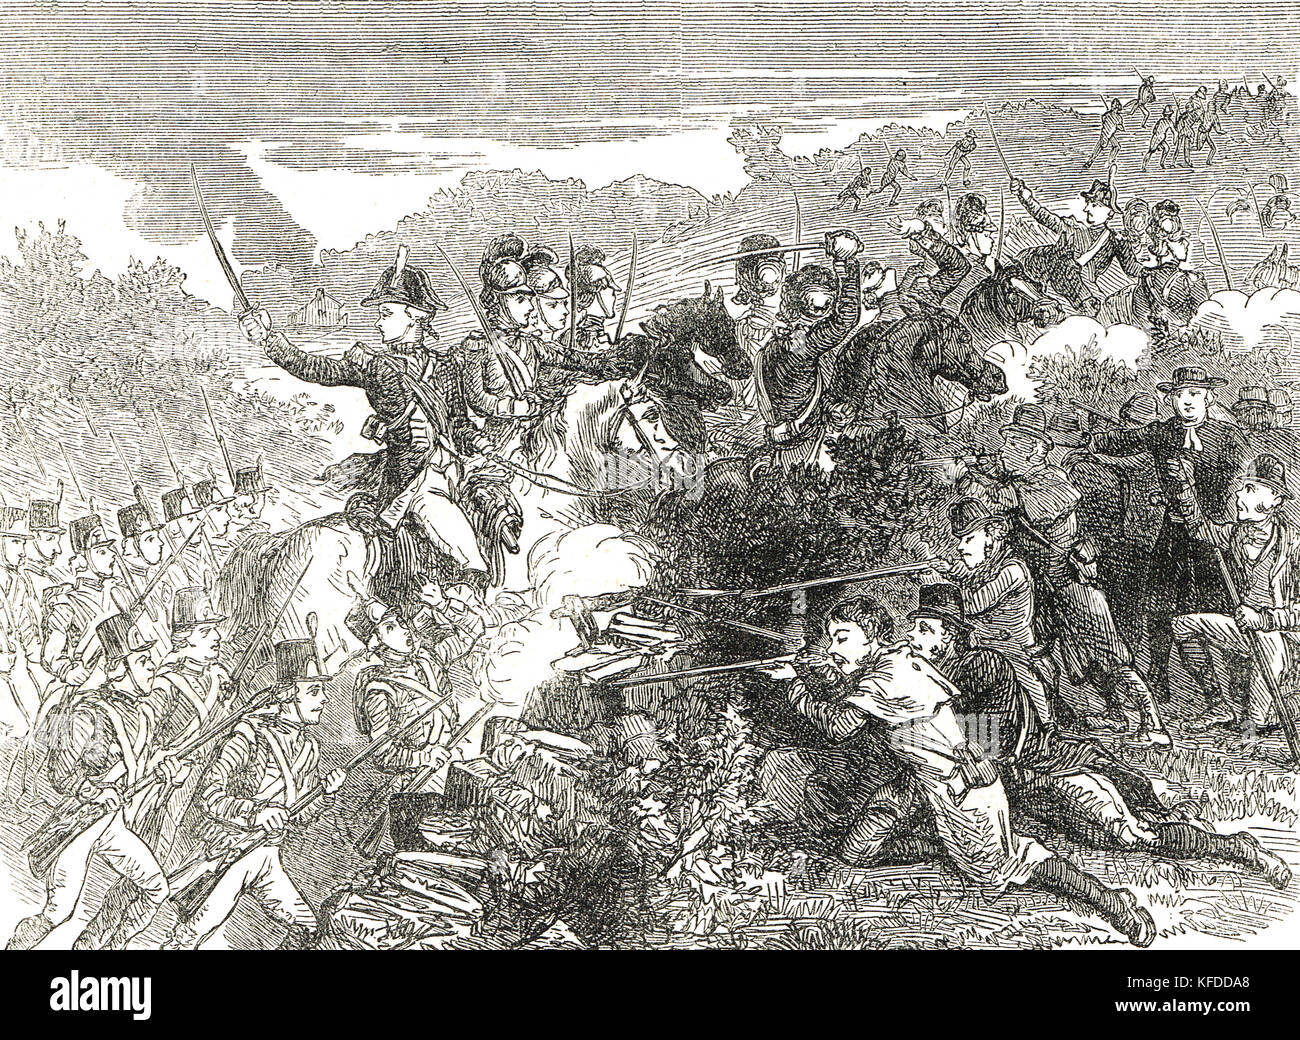 British Army attack on the Wexford rebels, 1798, Irish Rebellion of 1798 -  Stock